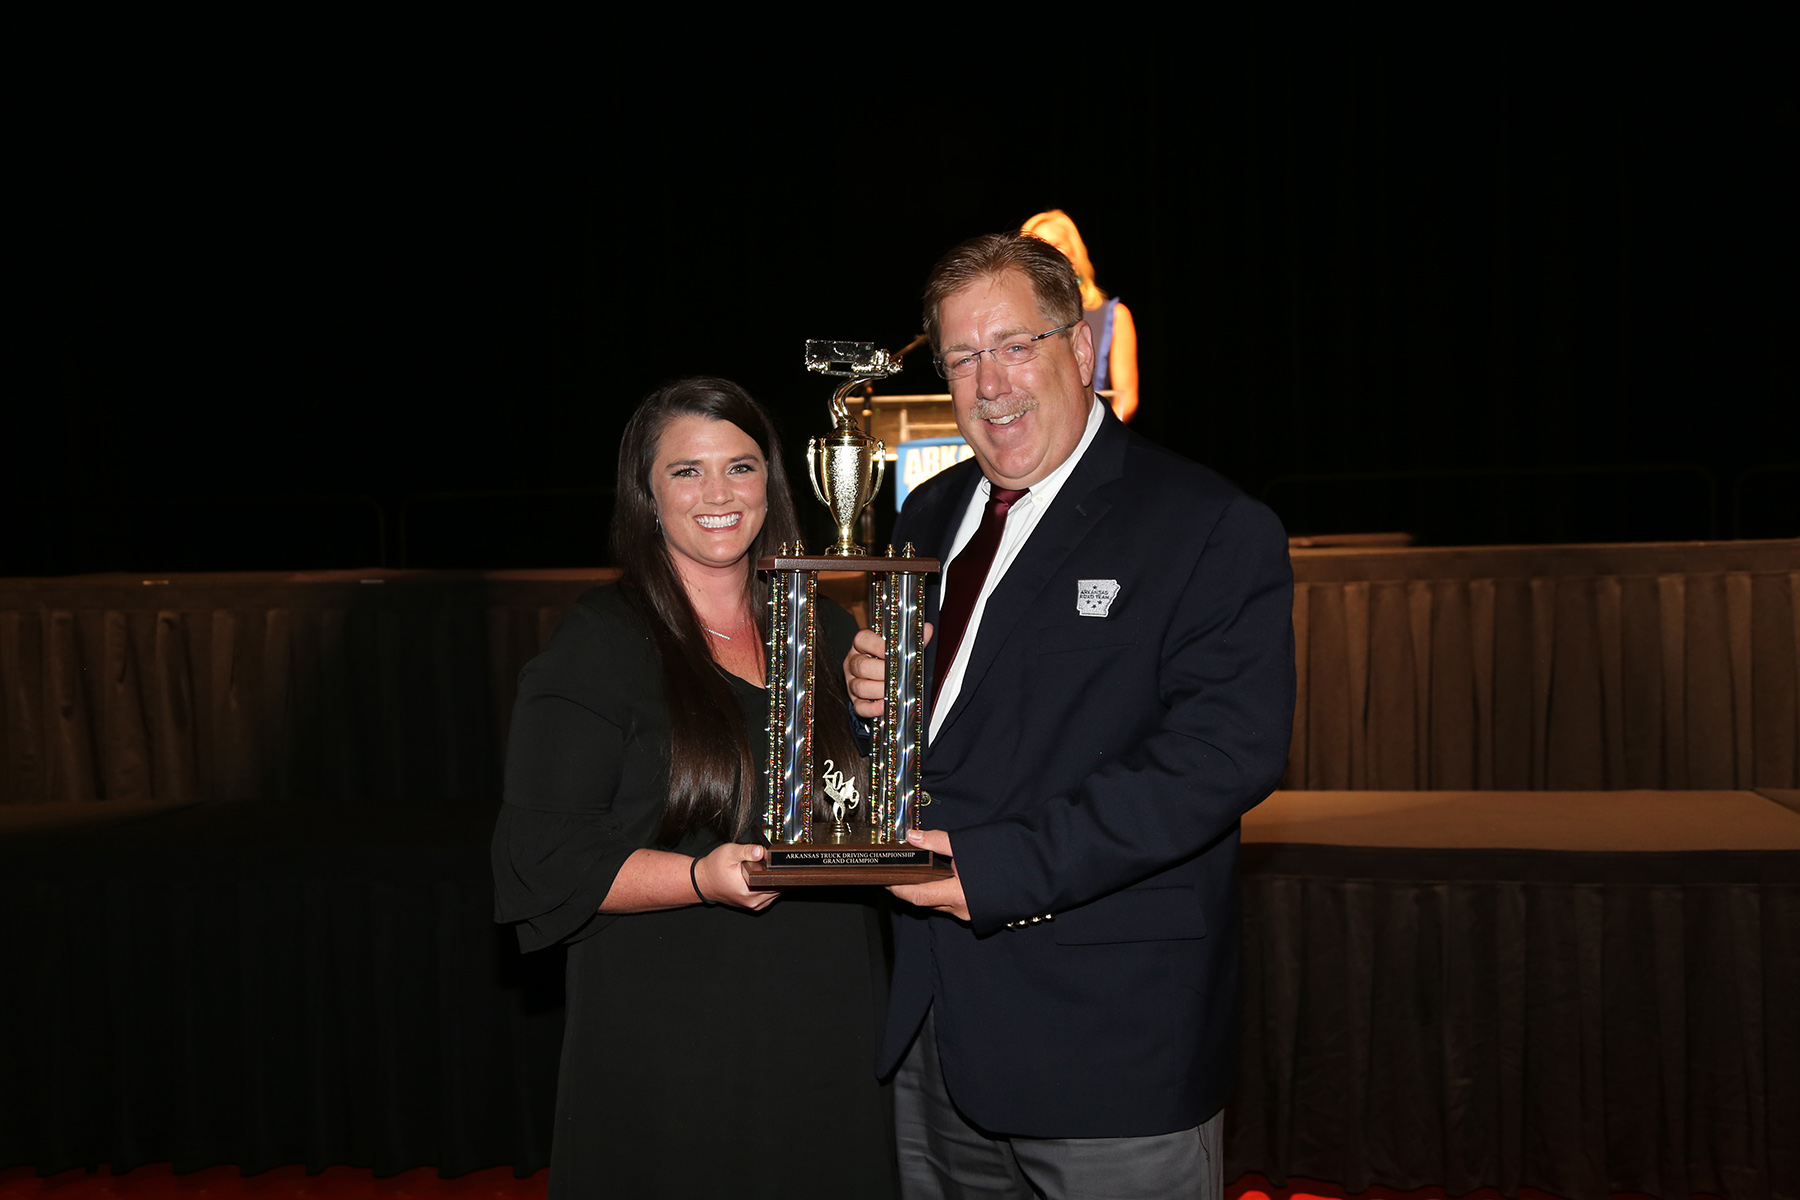 2019 Arkansas Trucking Championship Winner